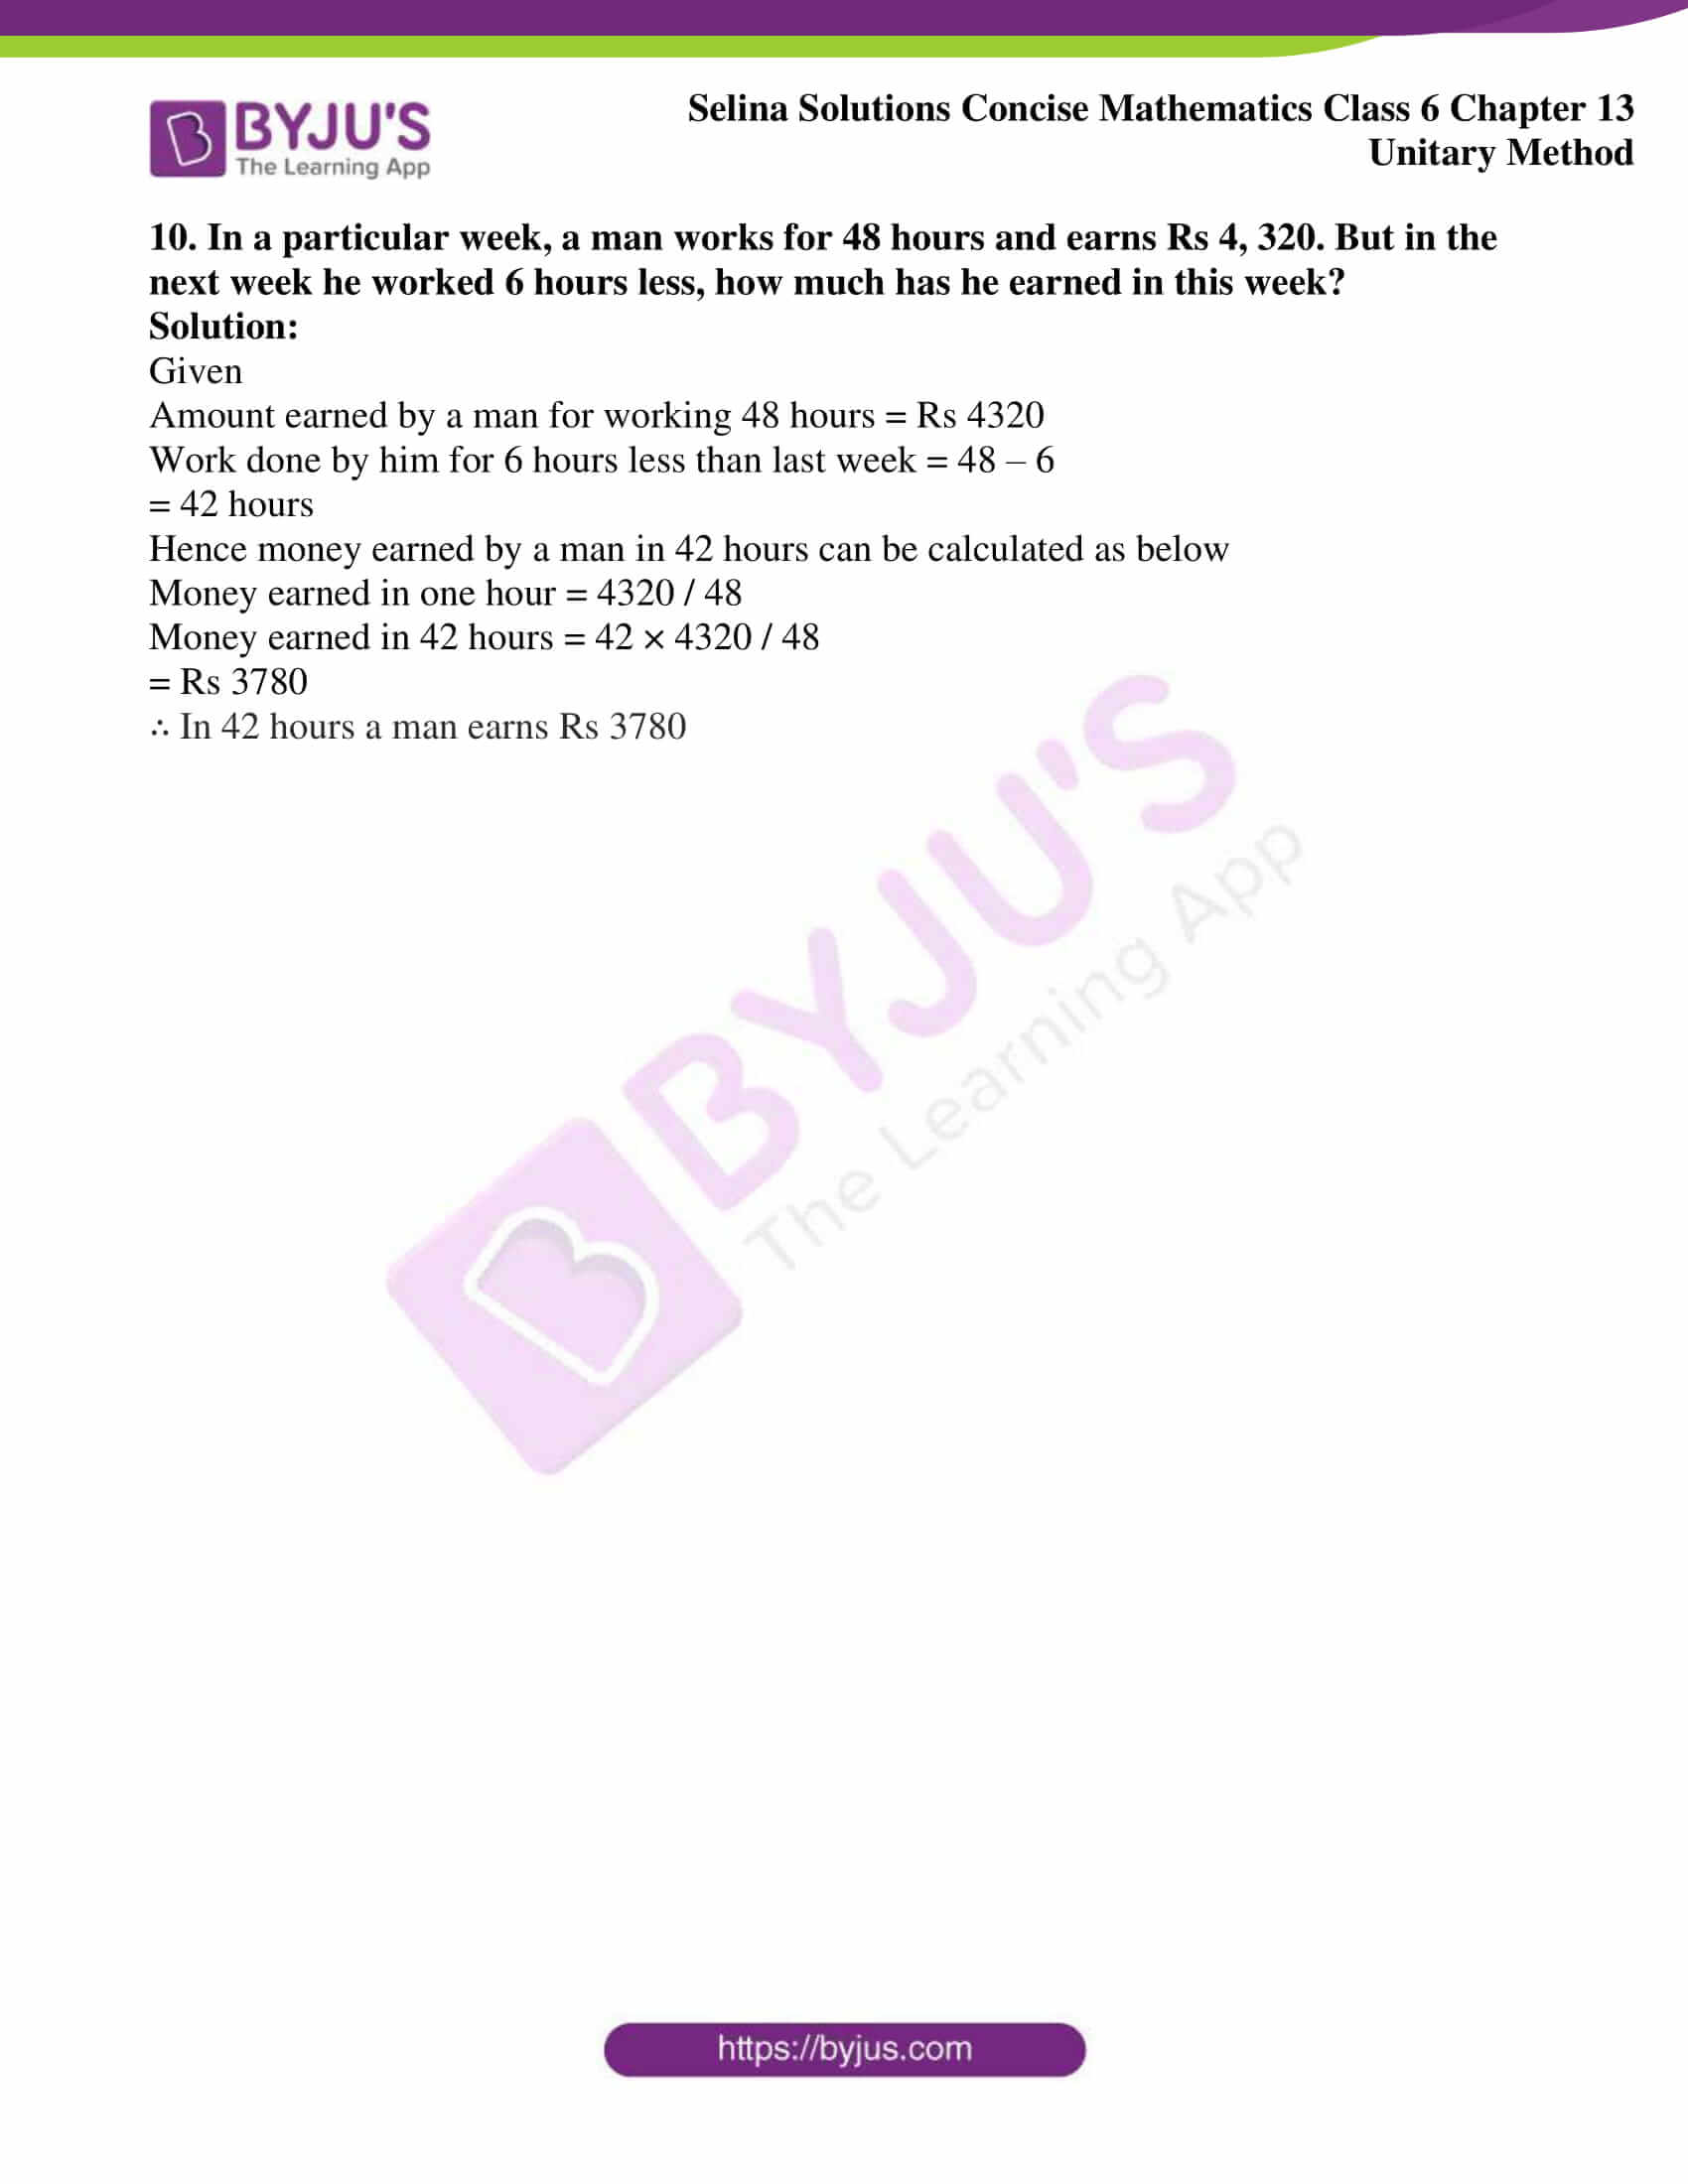 selina solution concise maths class 6 chapter 13 ex b 4